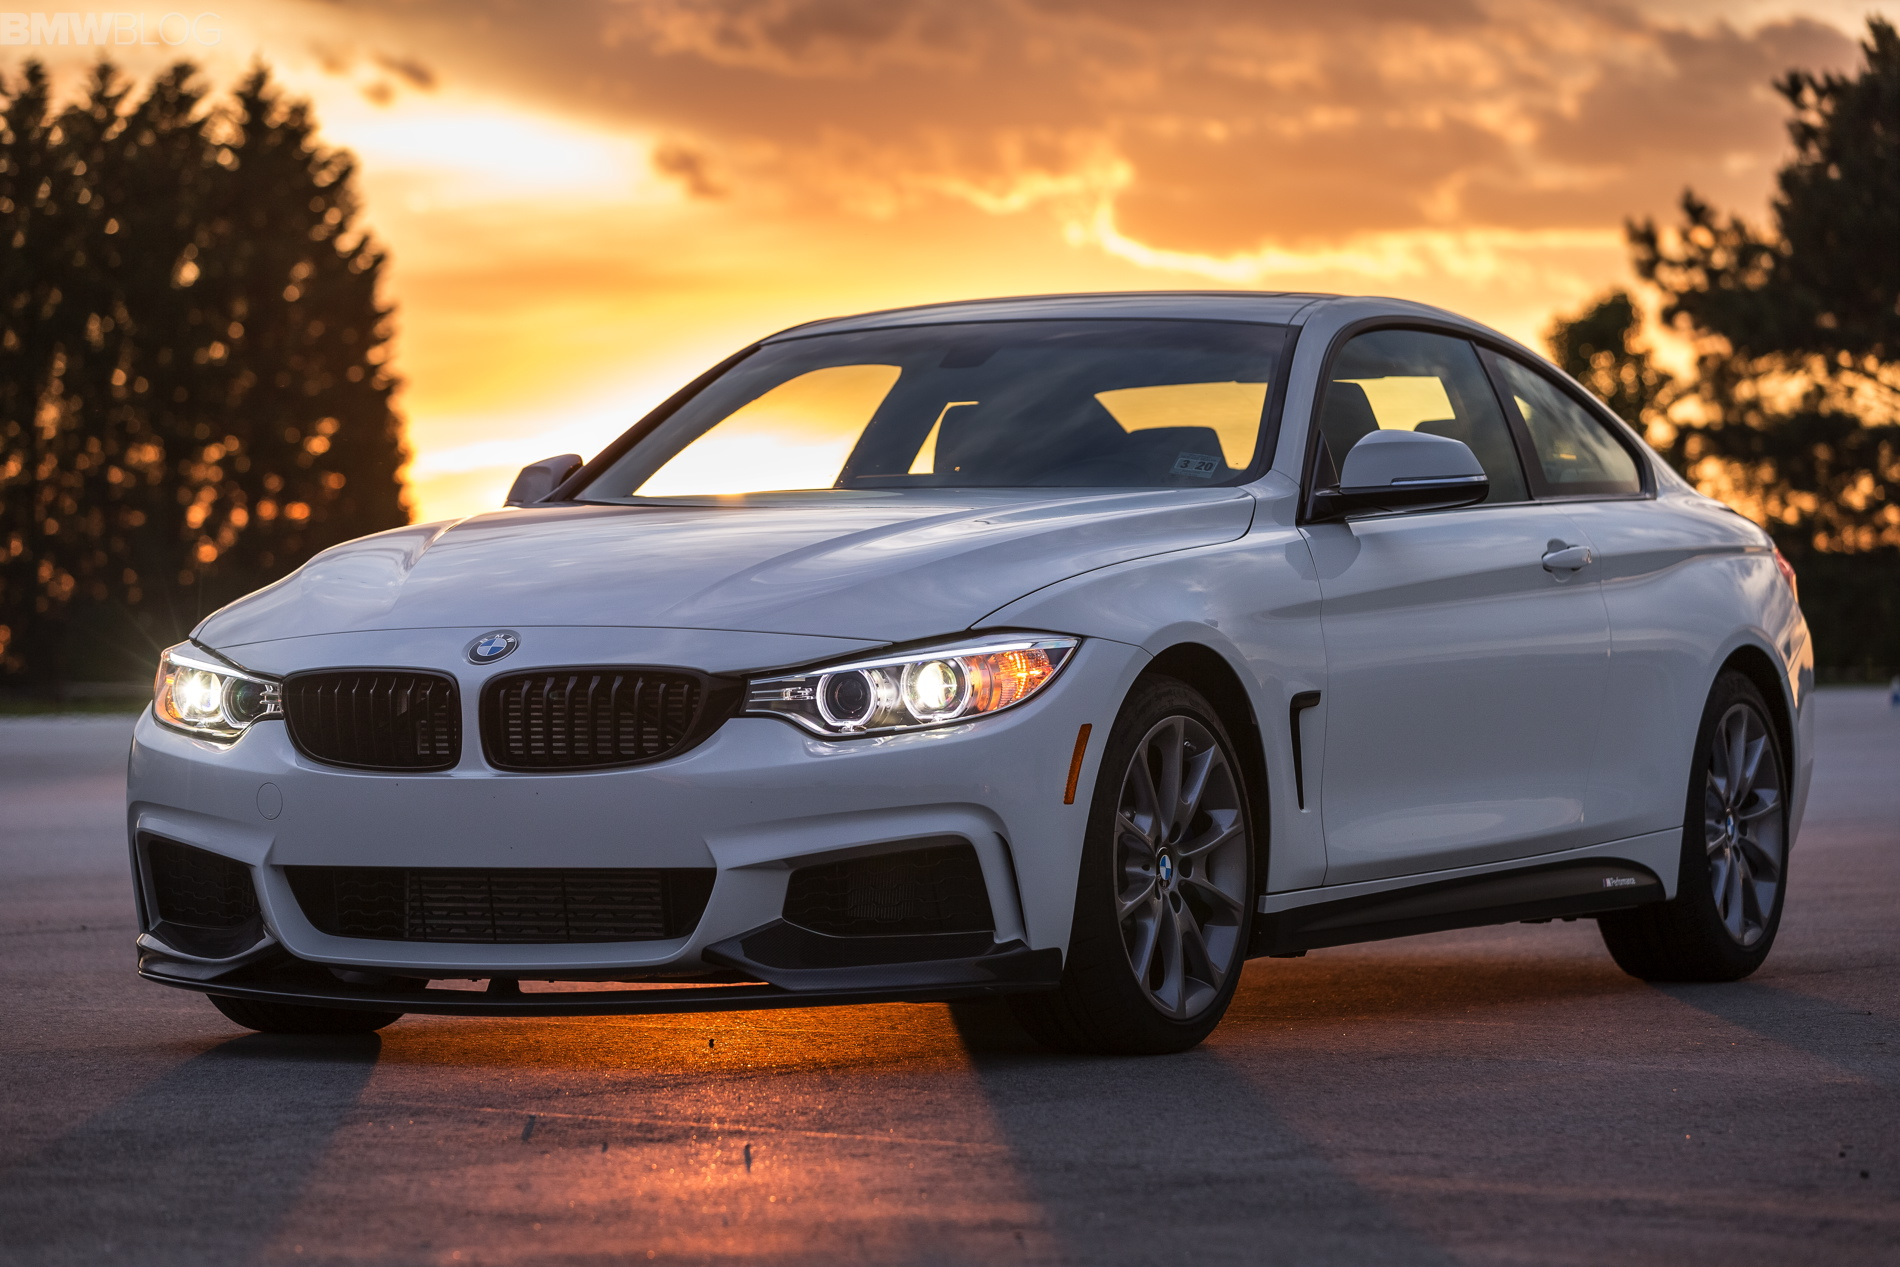 Bmw Usa Model Year 2016 Update Information